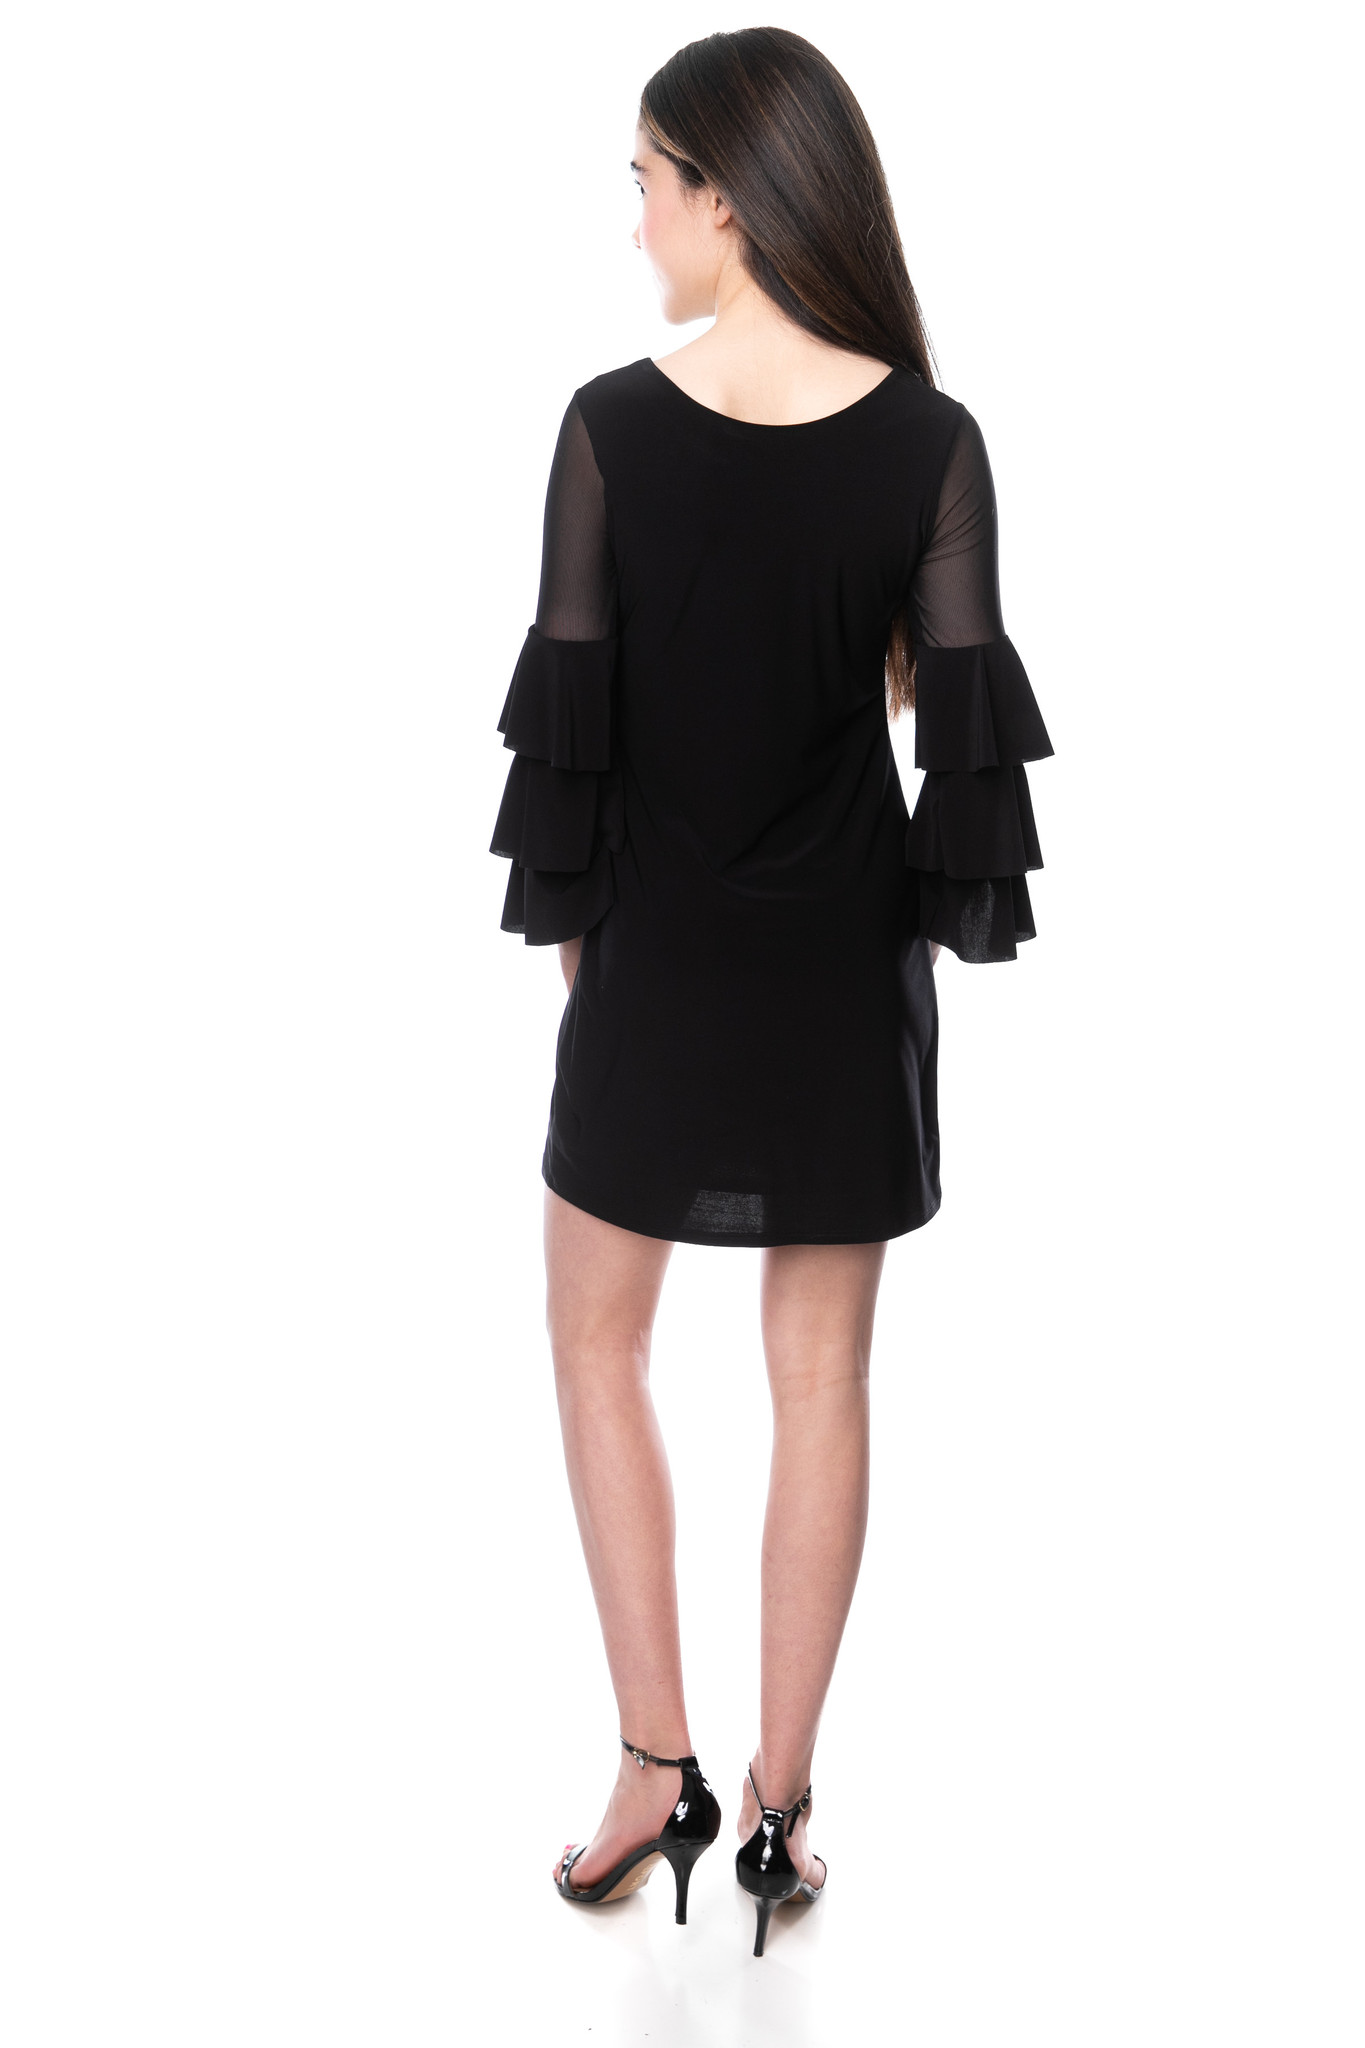 Back view of Tween Girls Black Fitted Bell Sleeve Dress in Longer Length.